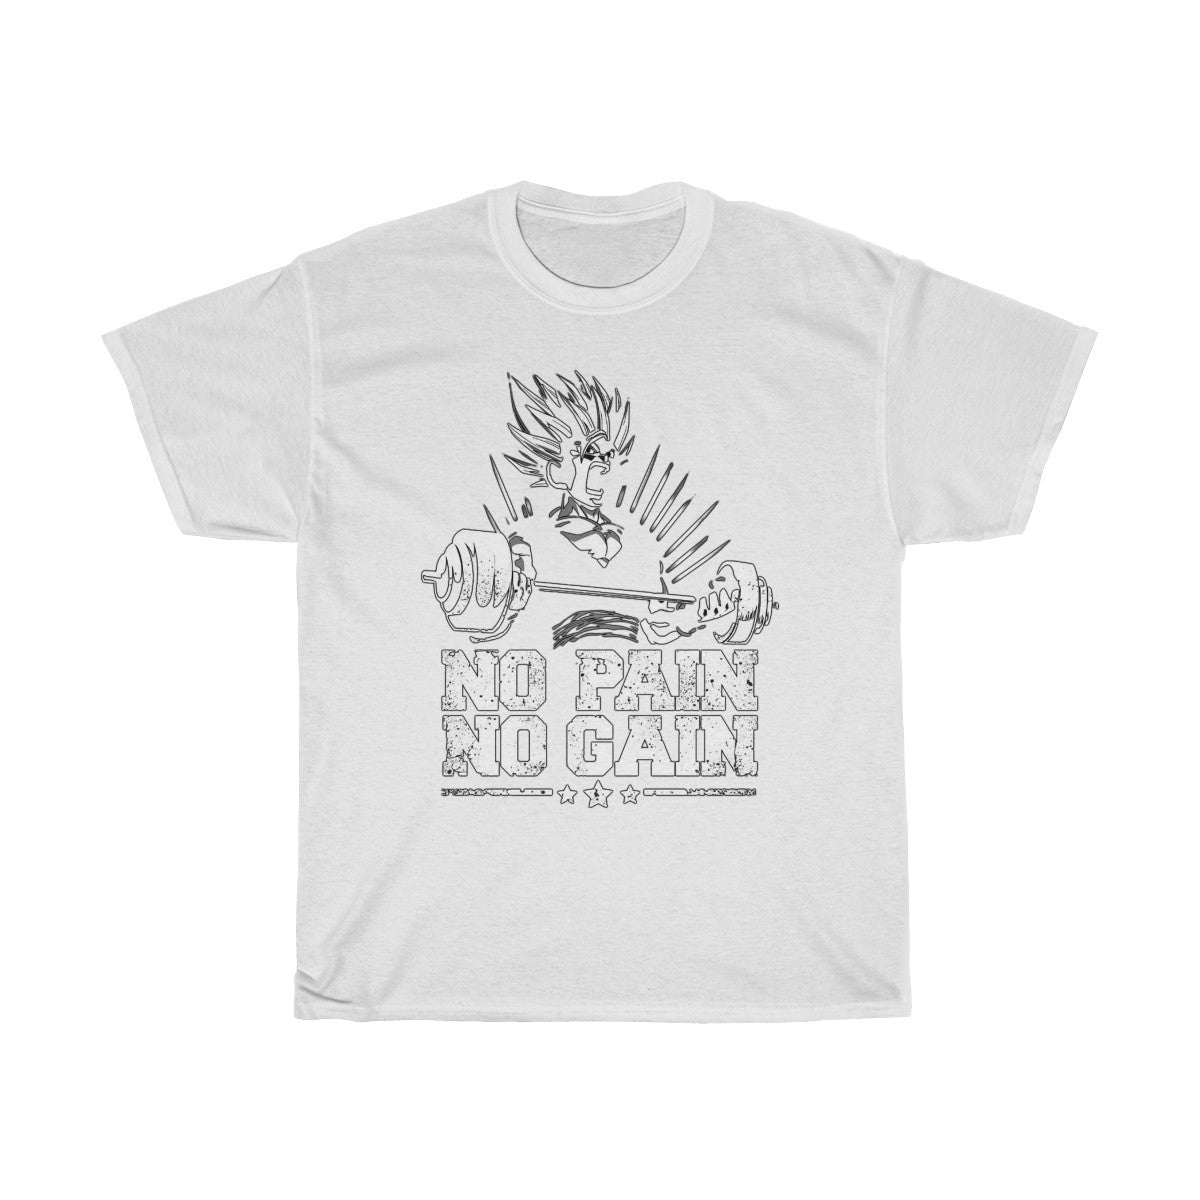 Unisex T-shirt Dragon ball Z